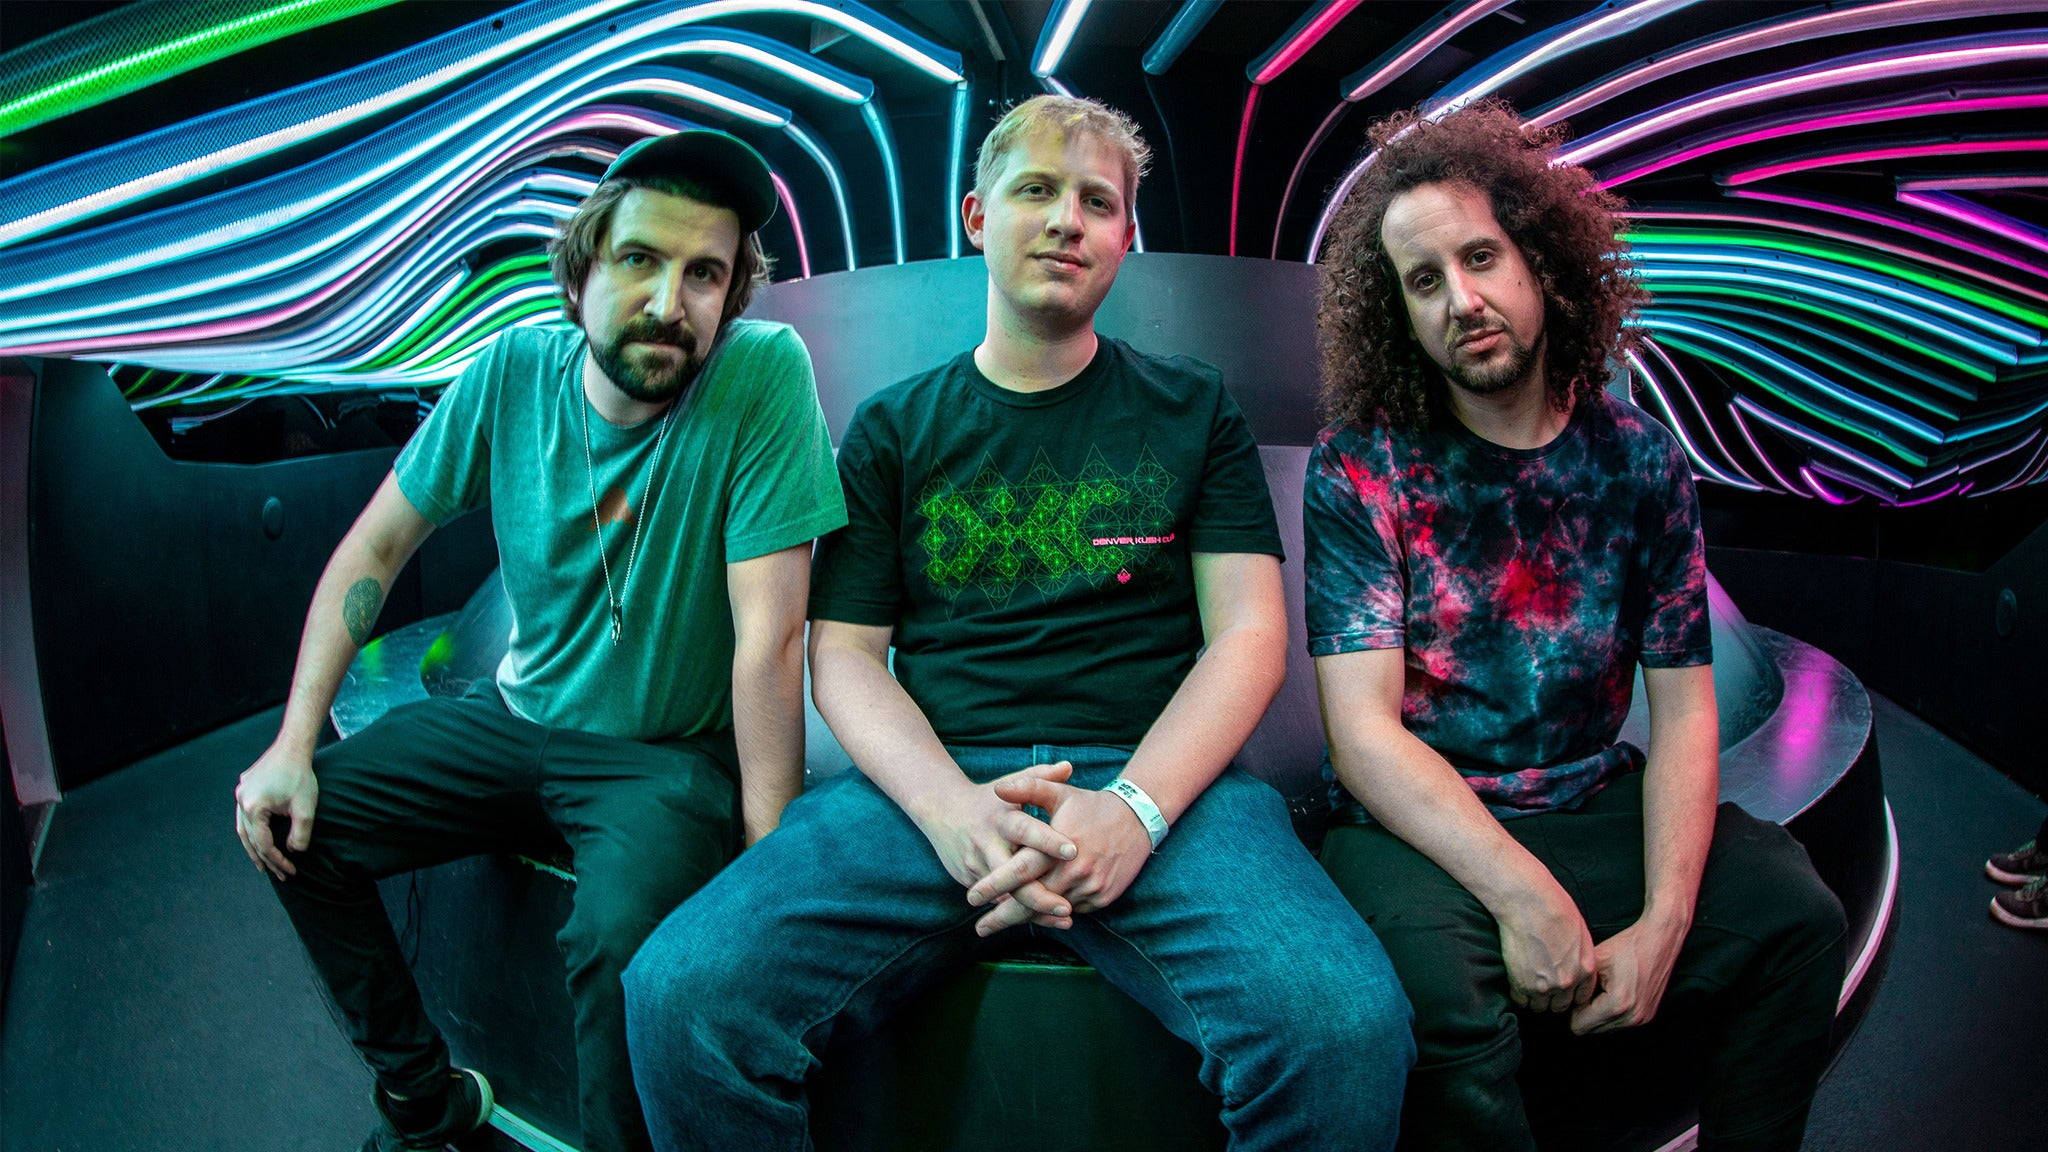 Sunsquabi & Too Many Zooz presale password for event tickets in Harrisburg, PA (XL Live)